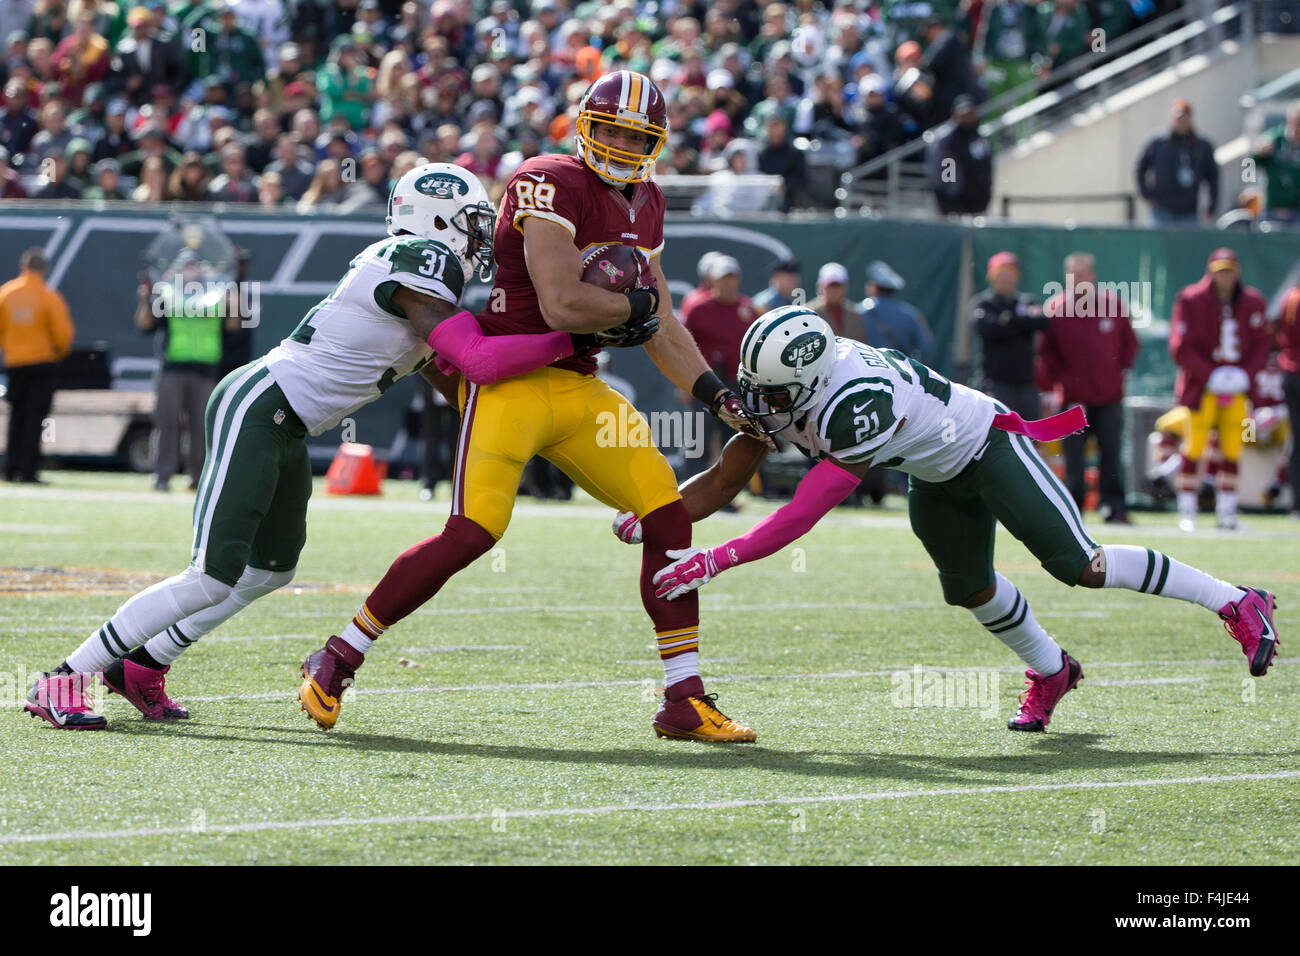 59f00b594 ... switzerland east rutherford new jersey usa. 18th oct 2015. washington  redskins tight end derek